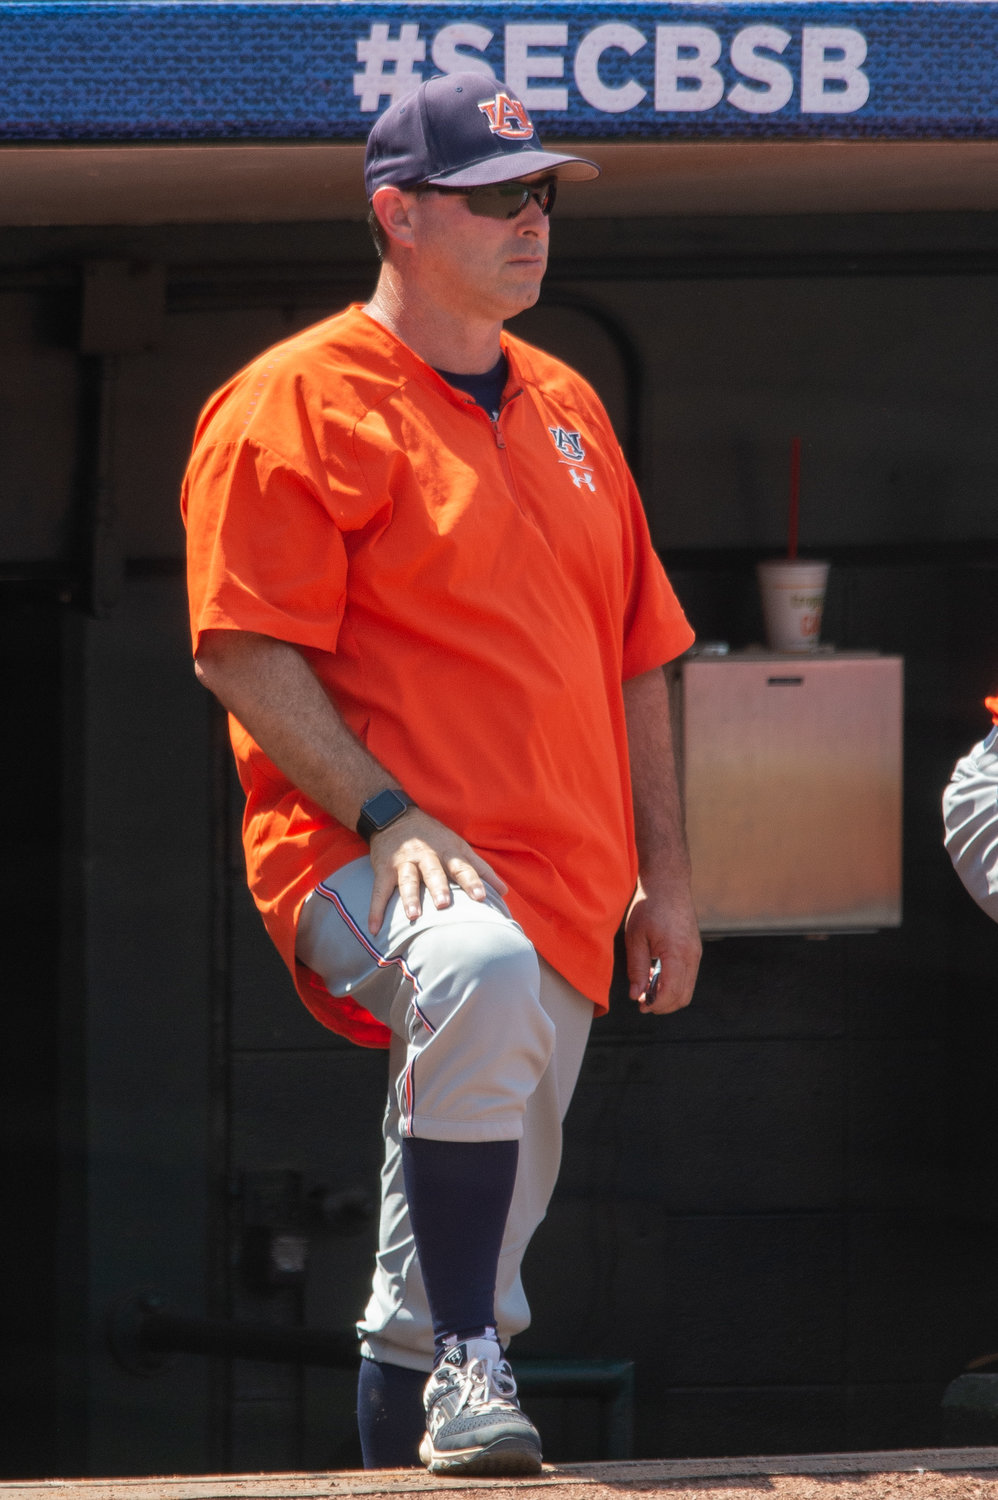 Auburn was eliminated from the SEC Tournament on Thursday following a 4-3 loss to LSU.